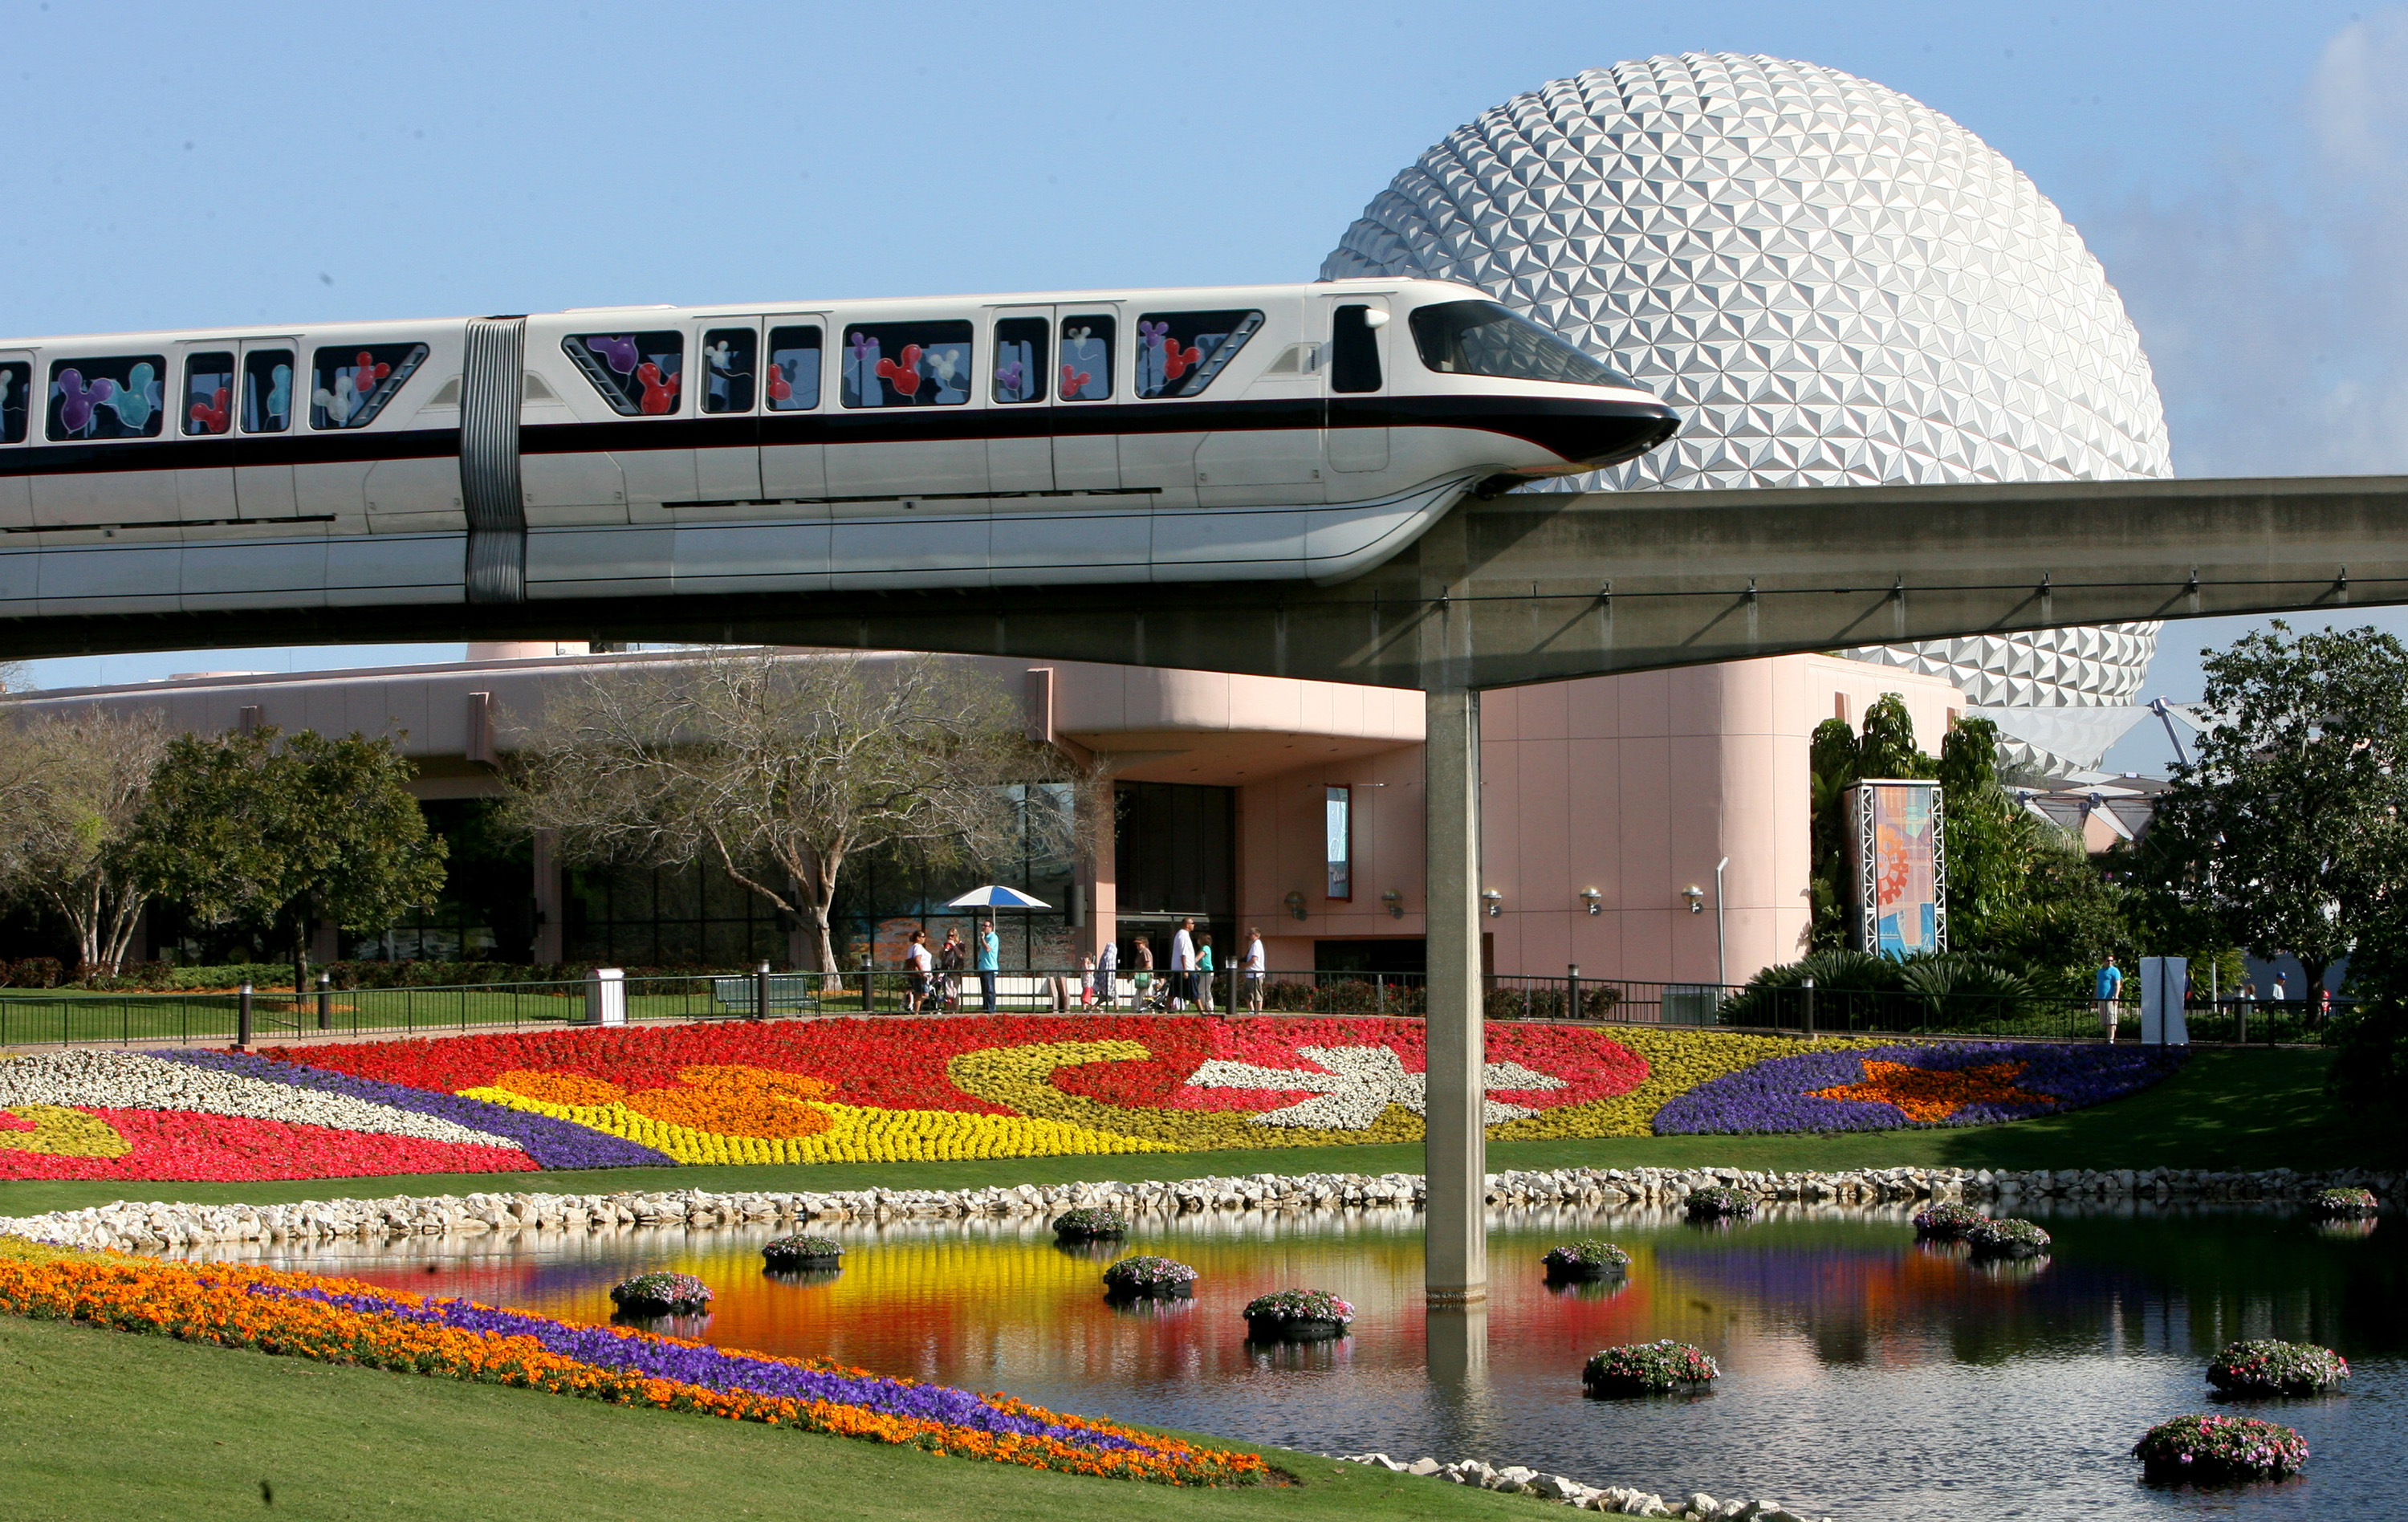 In this March 19, 2009 file photo, a Disney World monorail passes Spaceship Earth at Walt Disney World's Epcot Center in Lake Buena Vista, Fla.